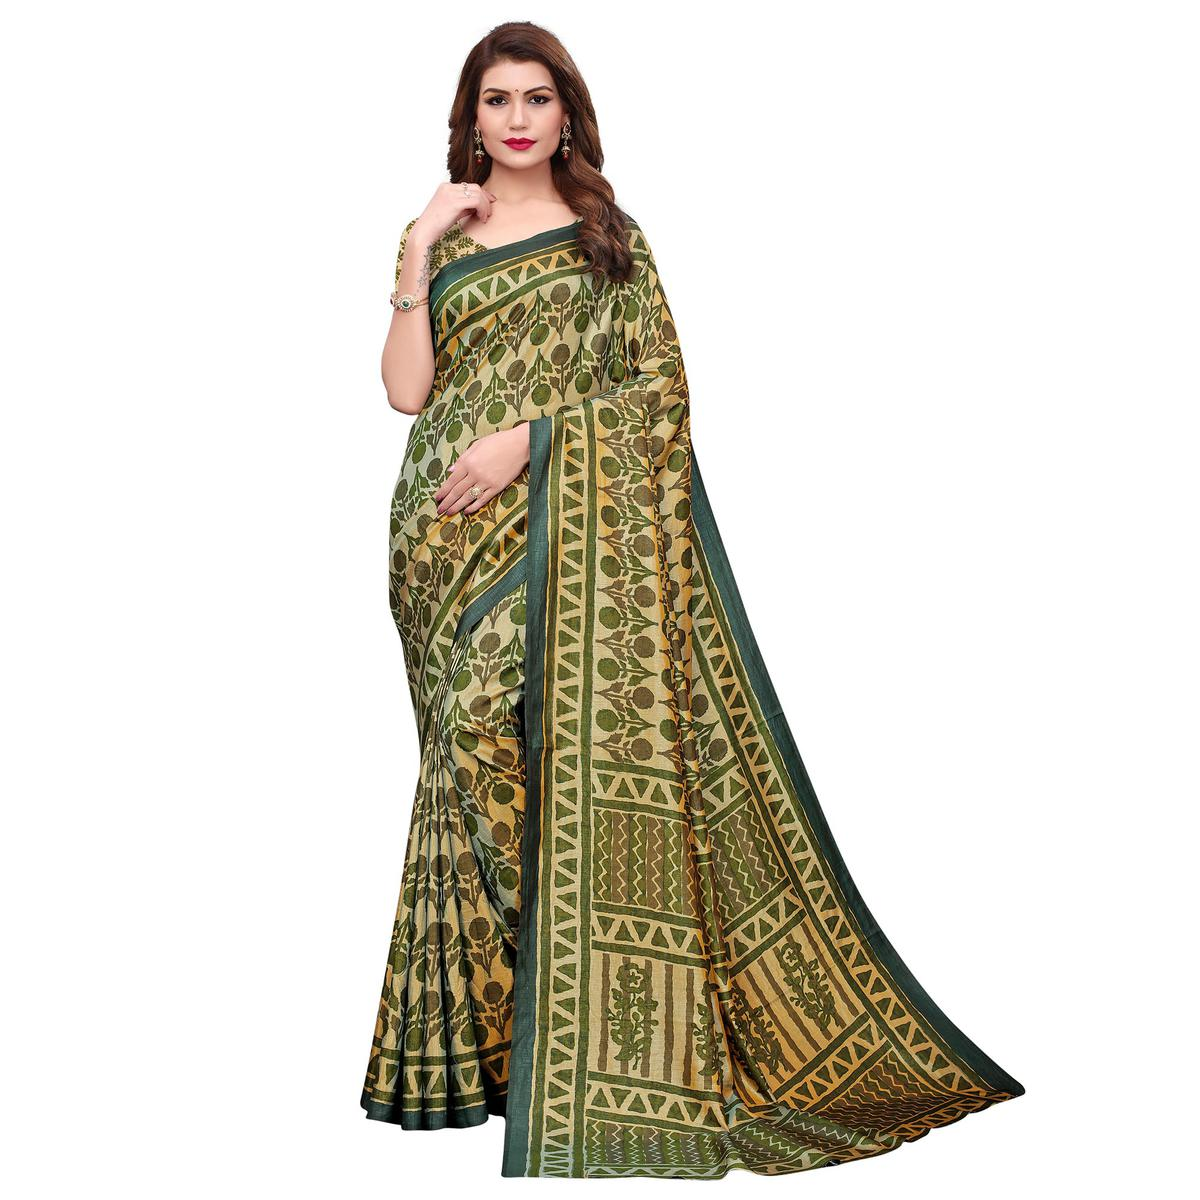 Capricious Light Green Colored Casual Printed Silk Saree